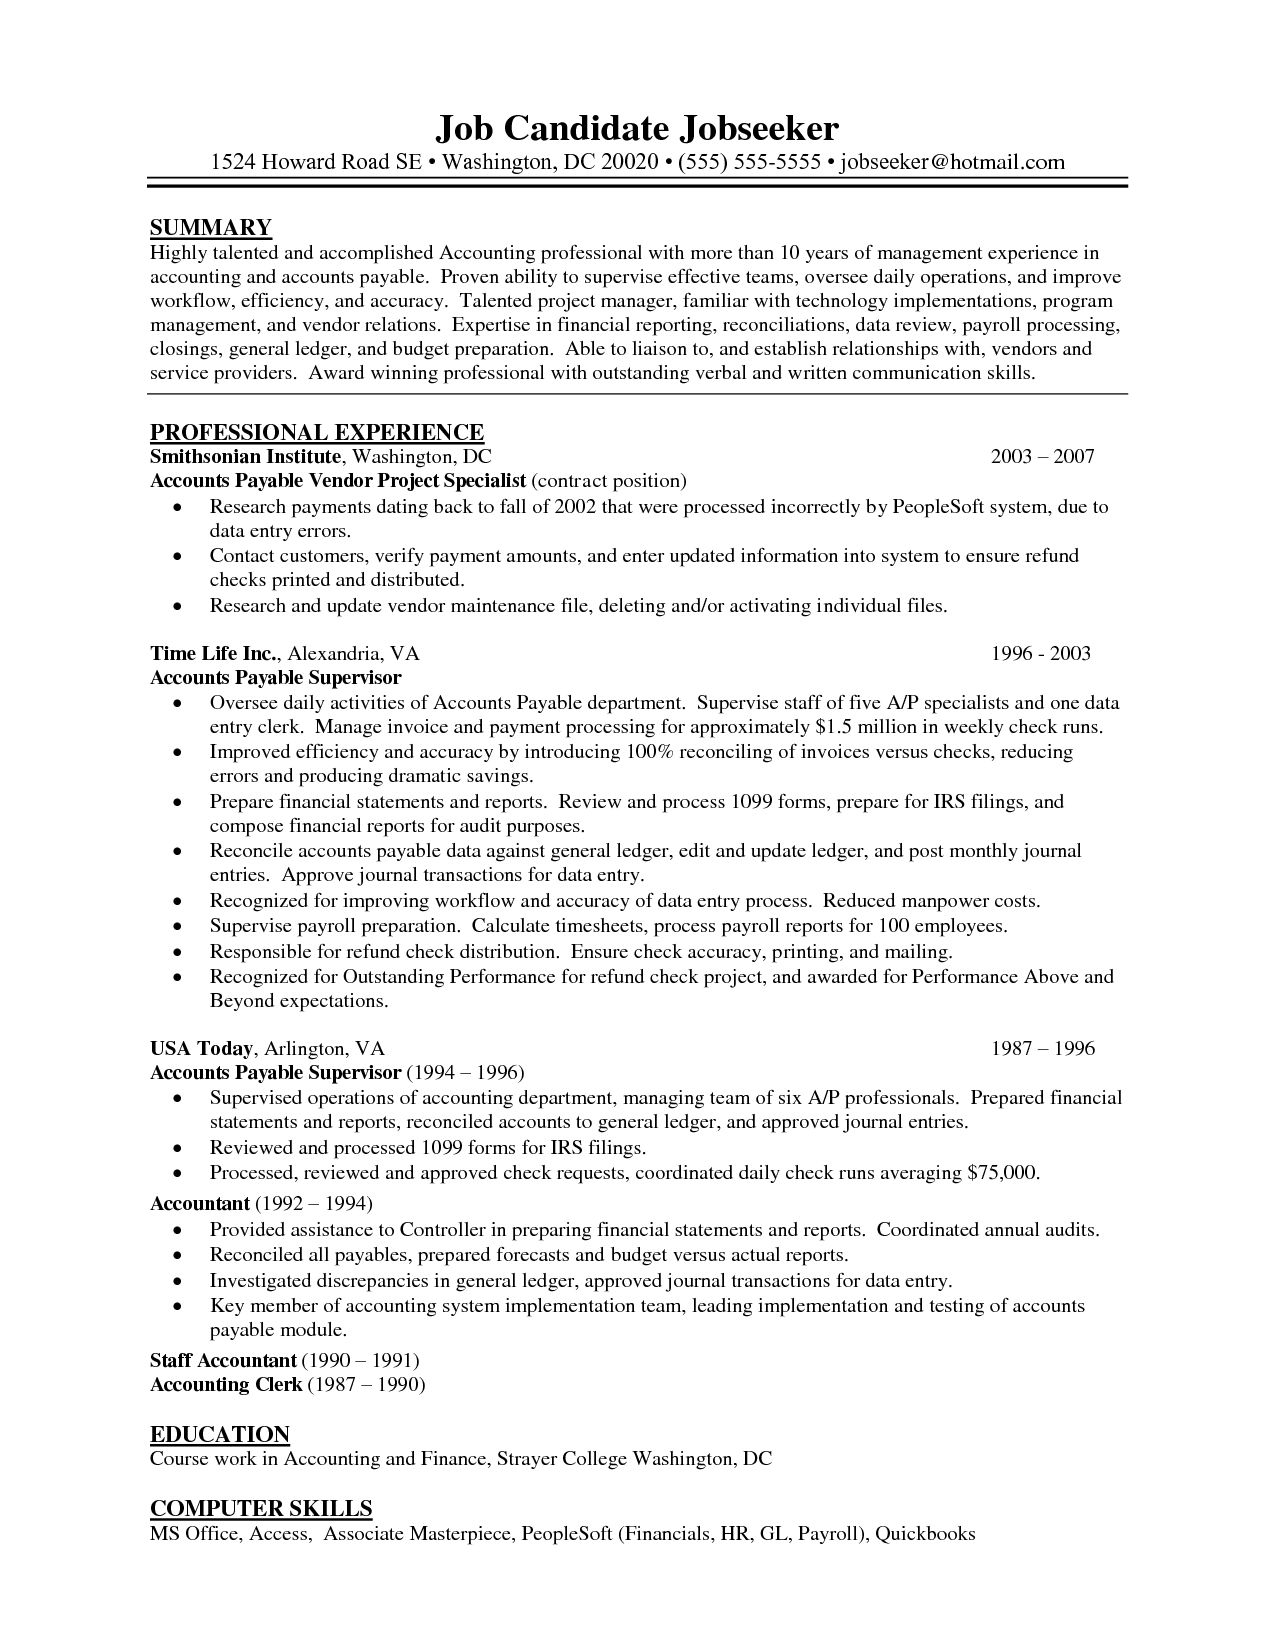 Accounts Payable Resume Samples Endearing Resume Examples Accounts Payable  Pinterest  Resume Examples